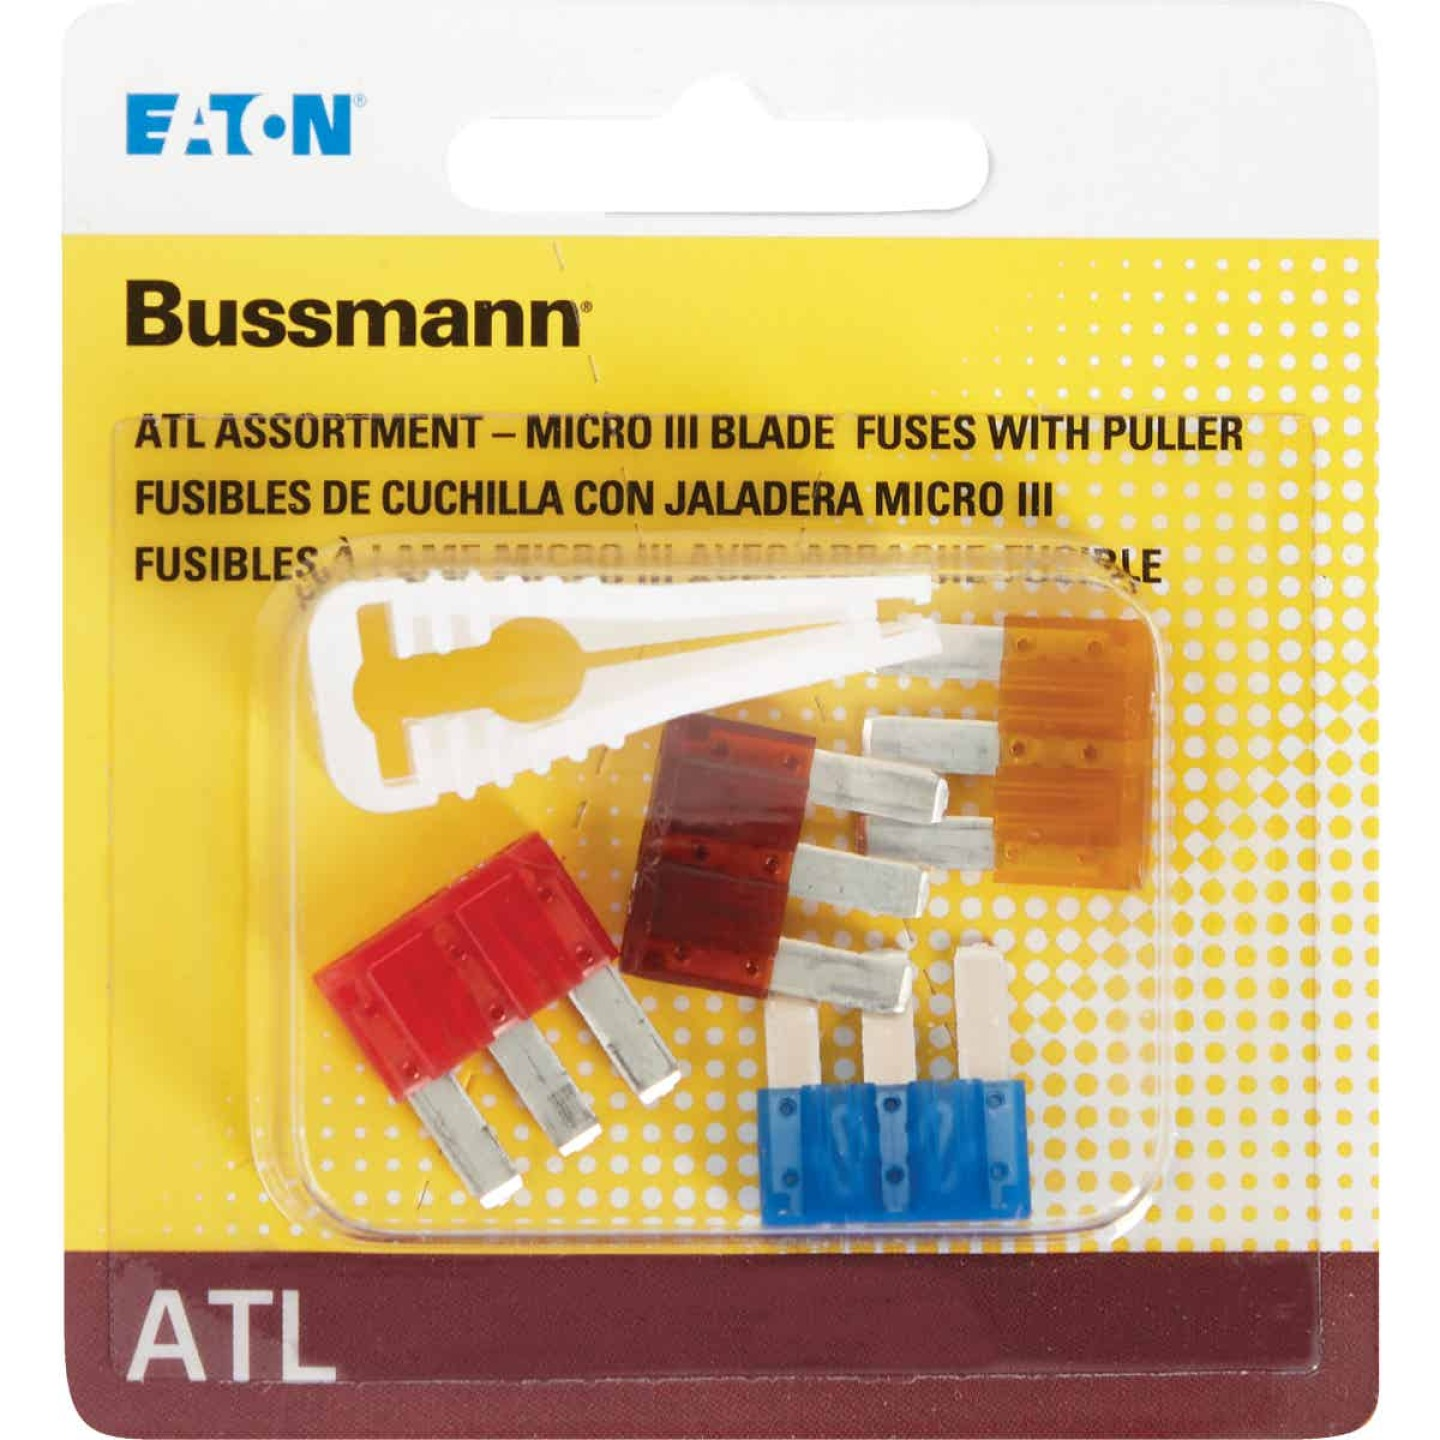 Bussmann ATL (Micro III) Fuse Assortment with Fuse Puller (4-Piece) Image 2